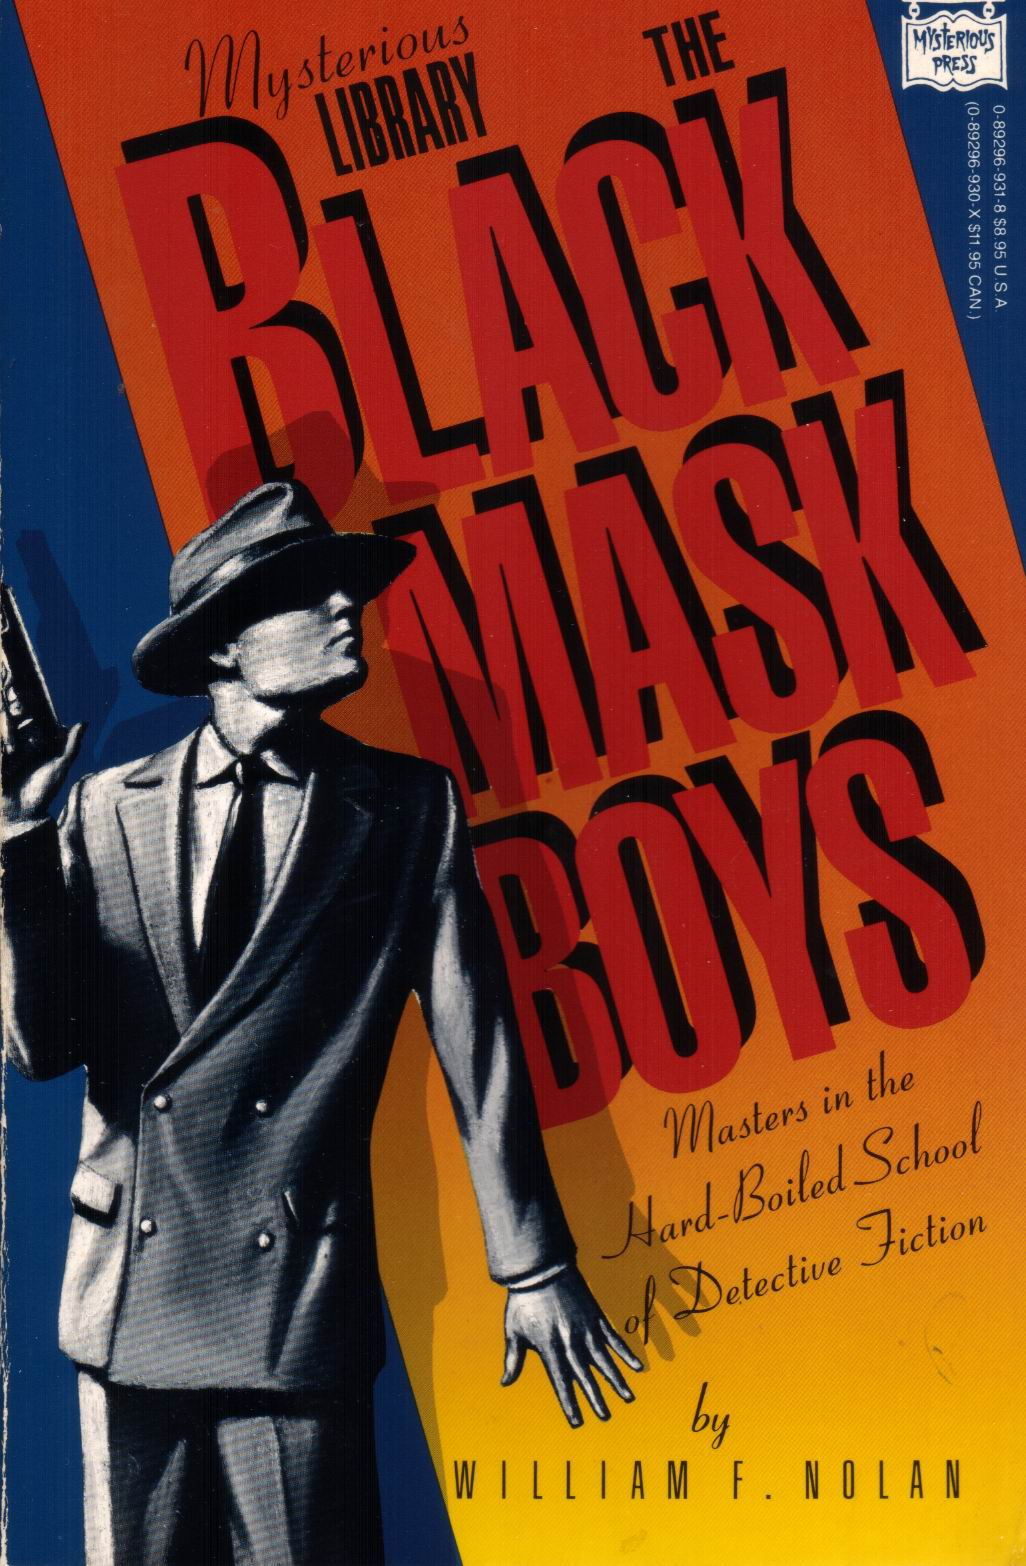 Black Boy Book Cover : Pulp fiction books to the ceiling